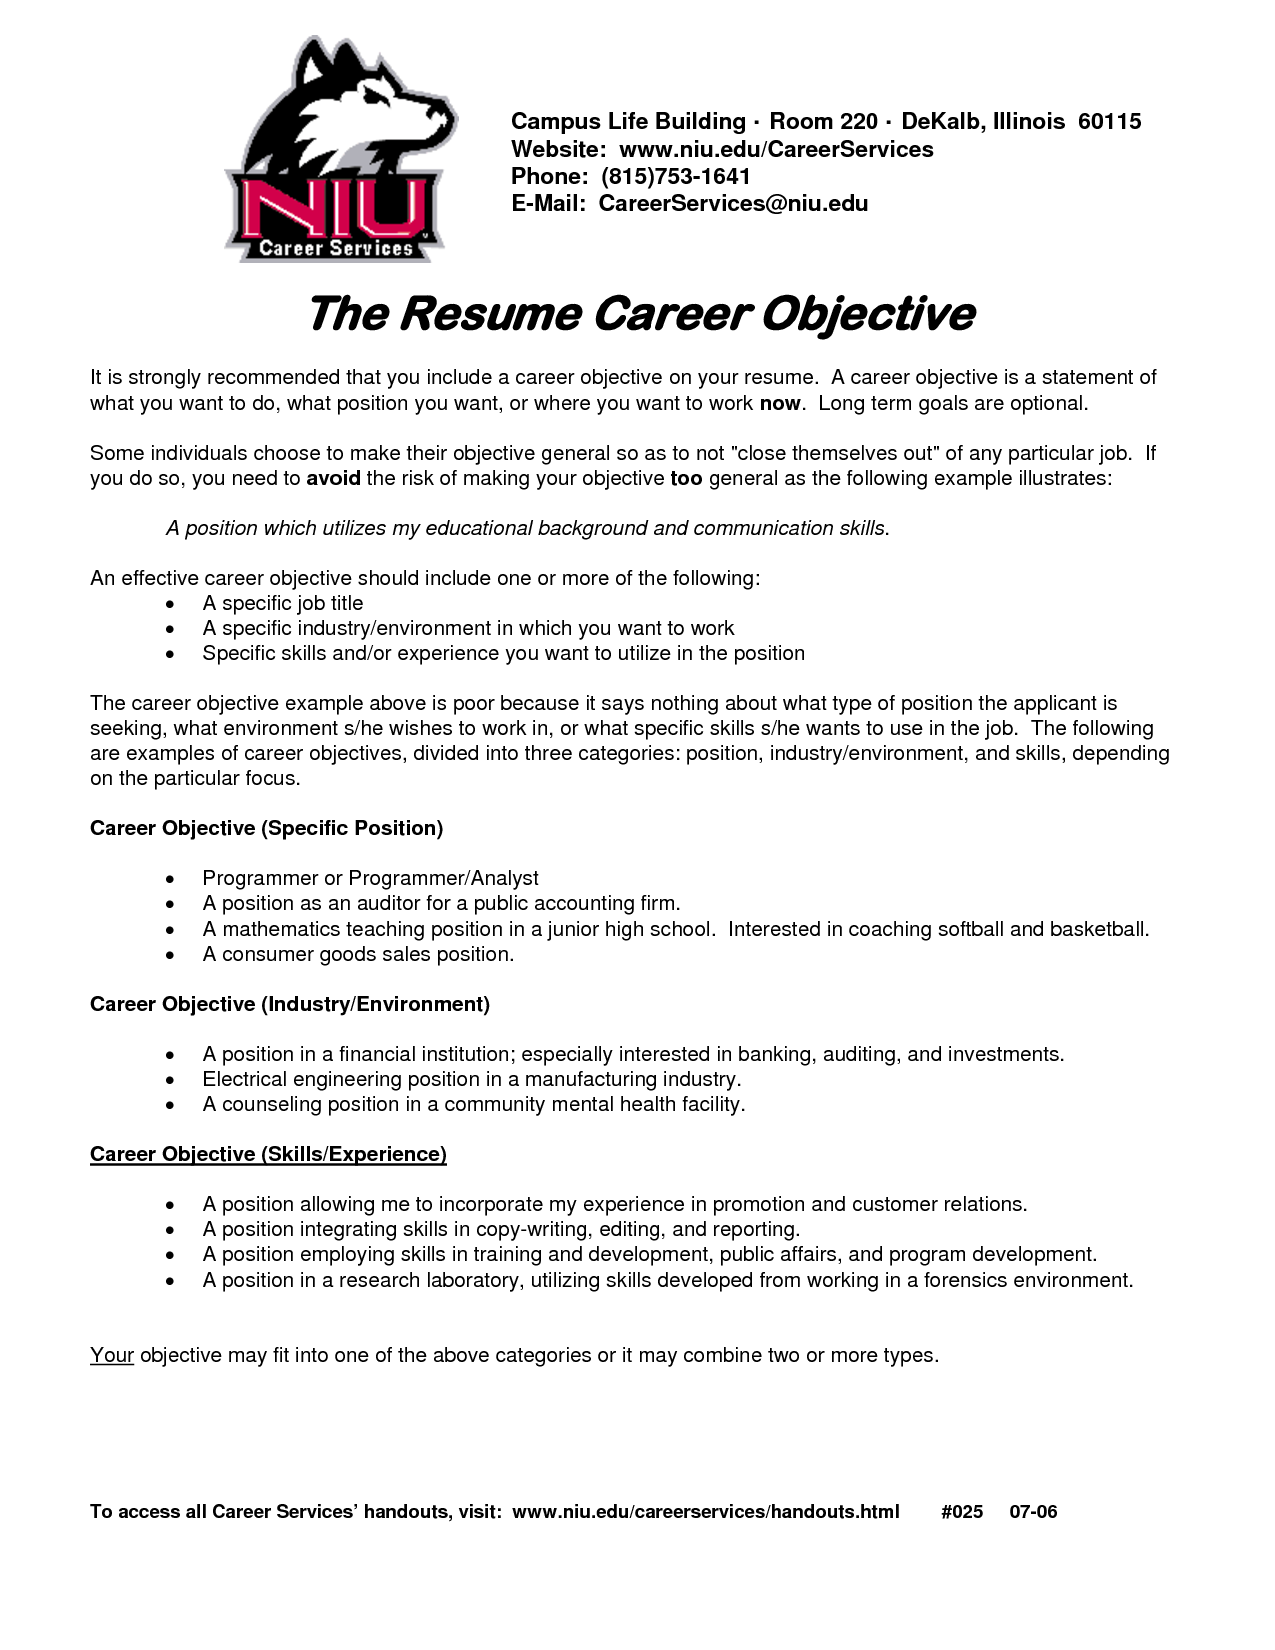 General Objectives For Resumes Httpswwwgooglesearchqobjective Resume  Resume